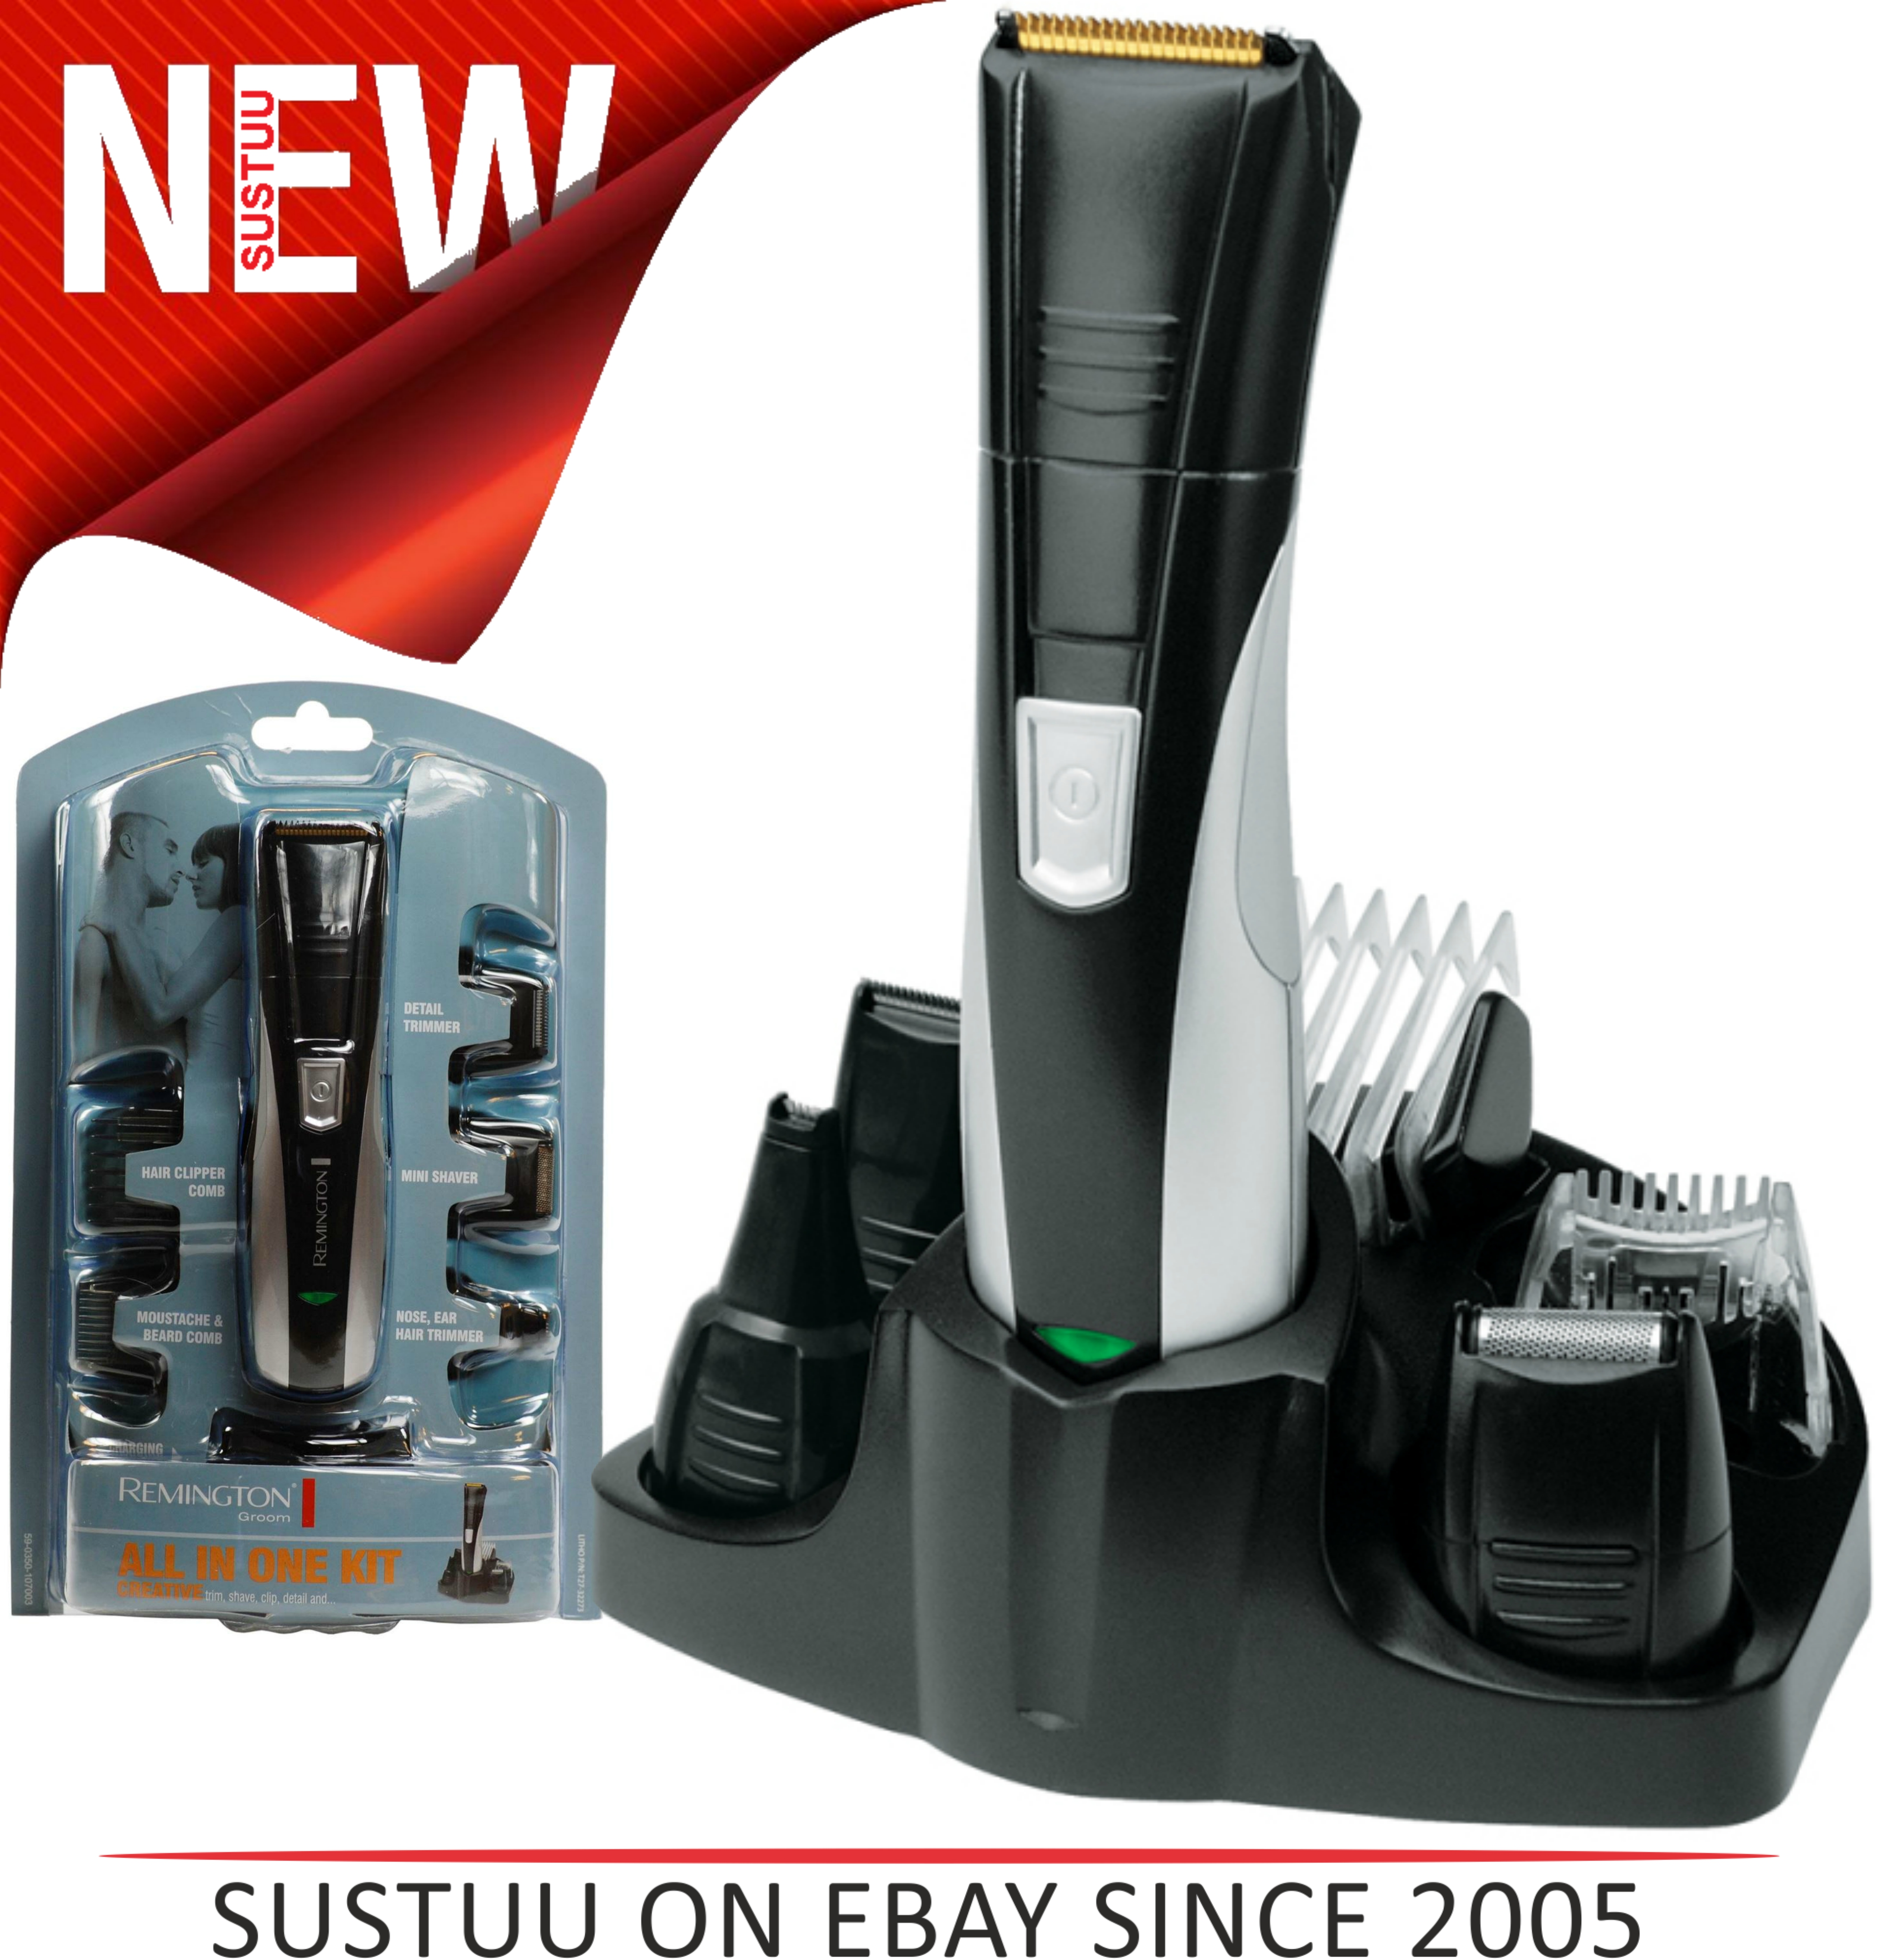 Remington PG350 Rechargeable Nose Nasal Hair Ear Trimmer Shaver Grooming Kit NEW